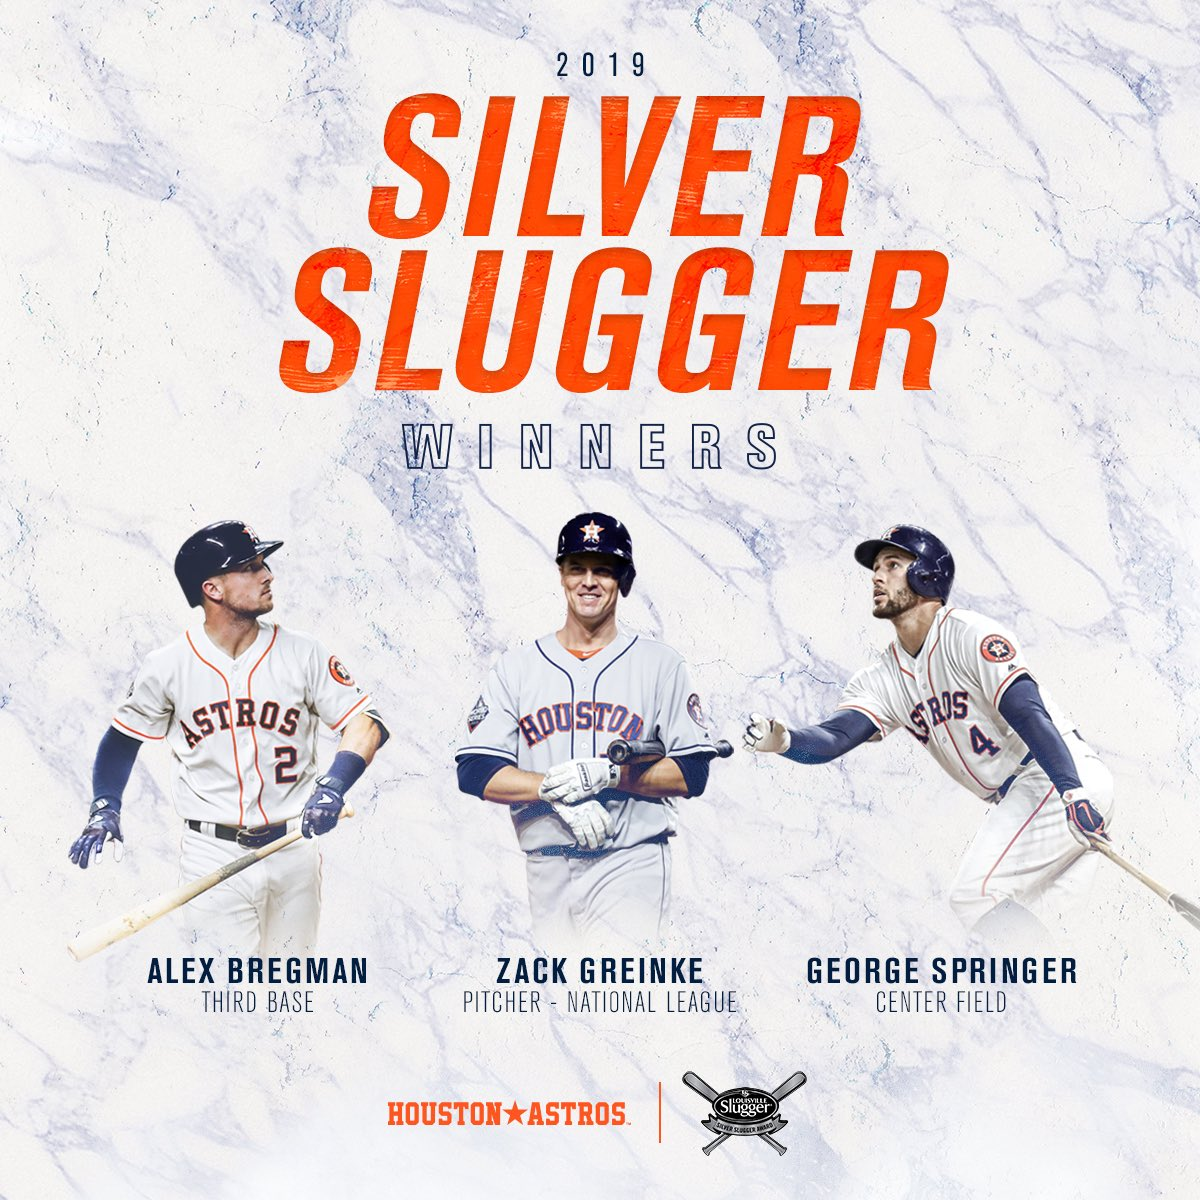 @astros's photo on Silver Slugger